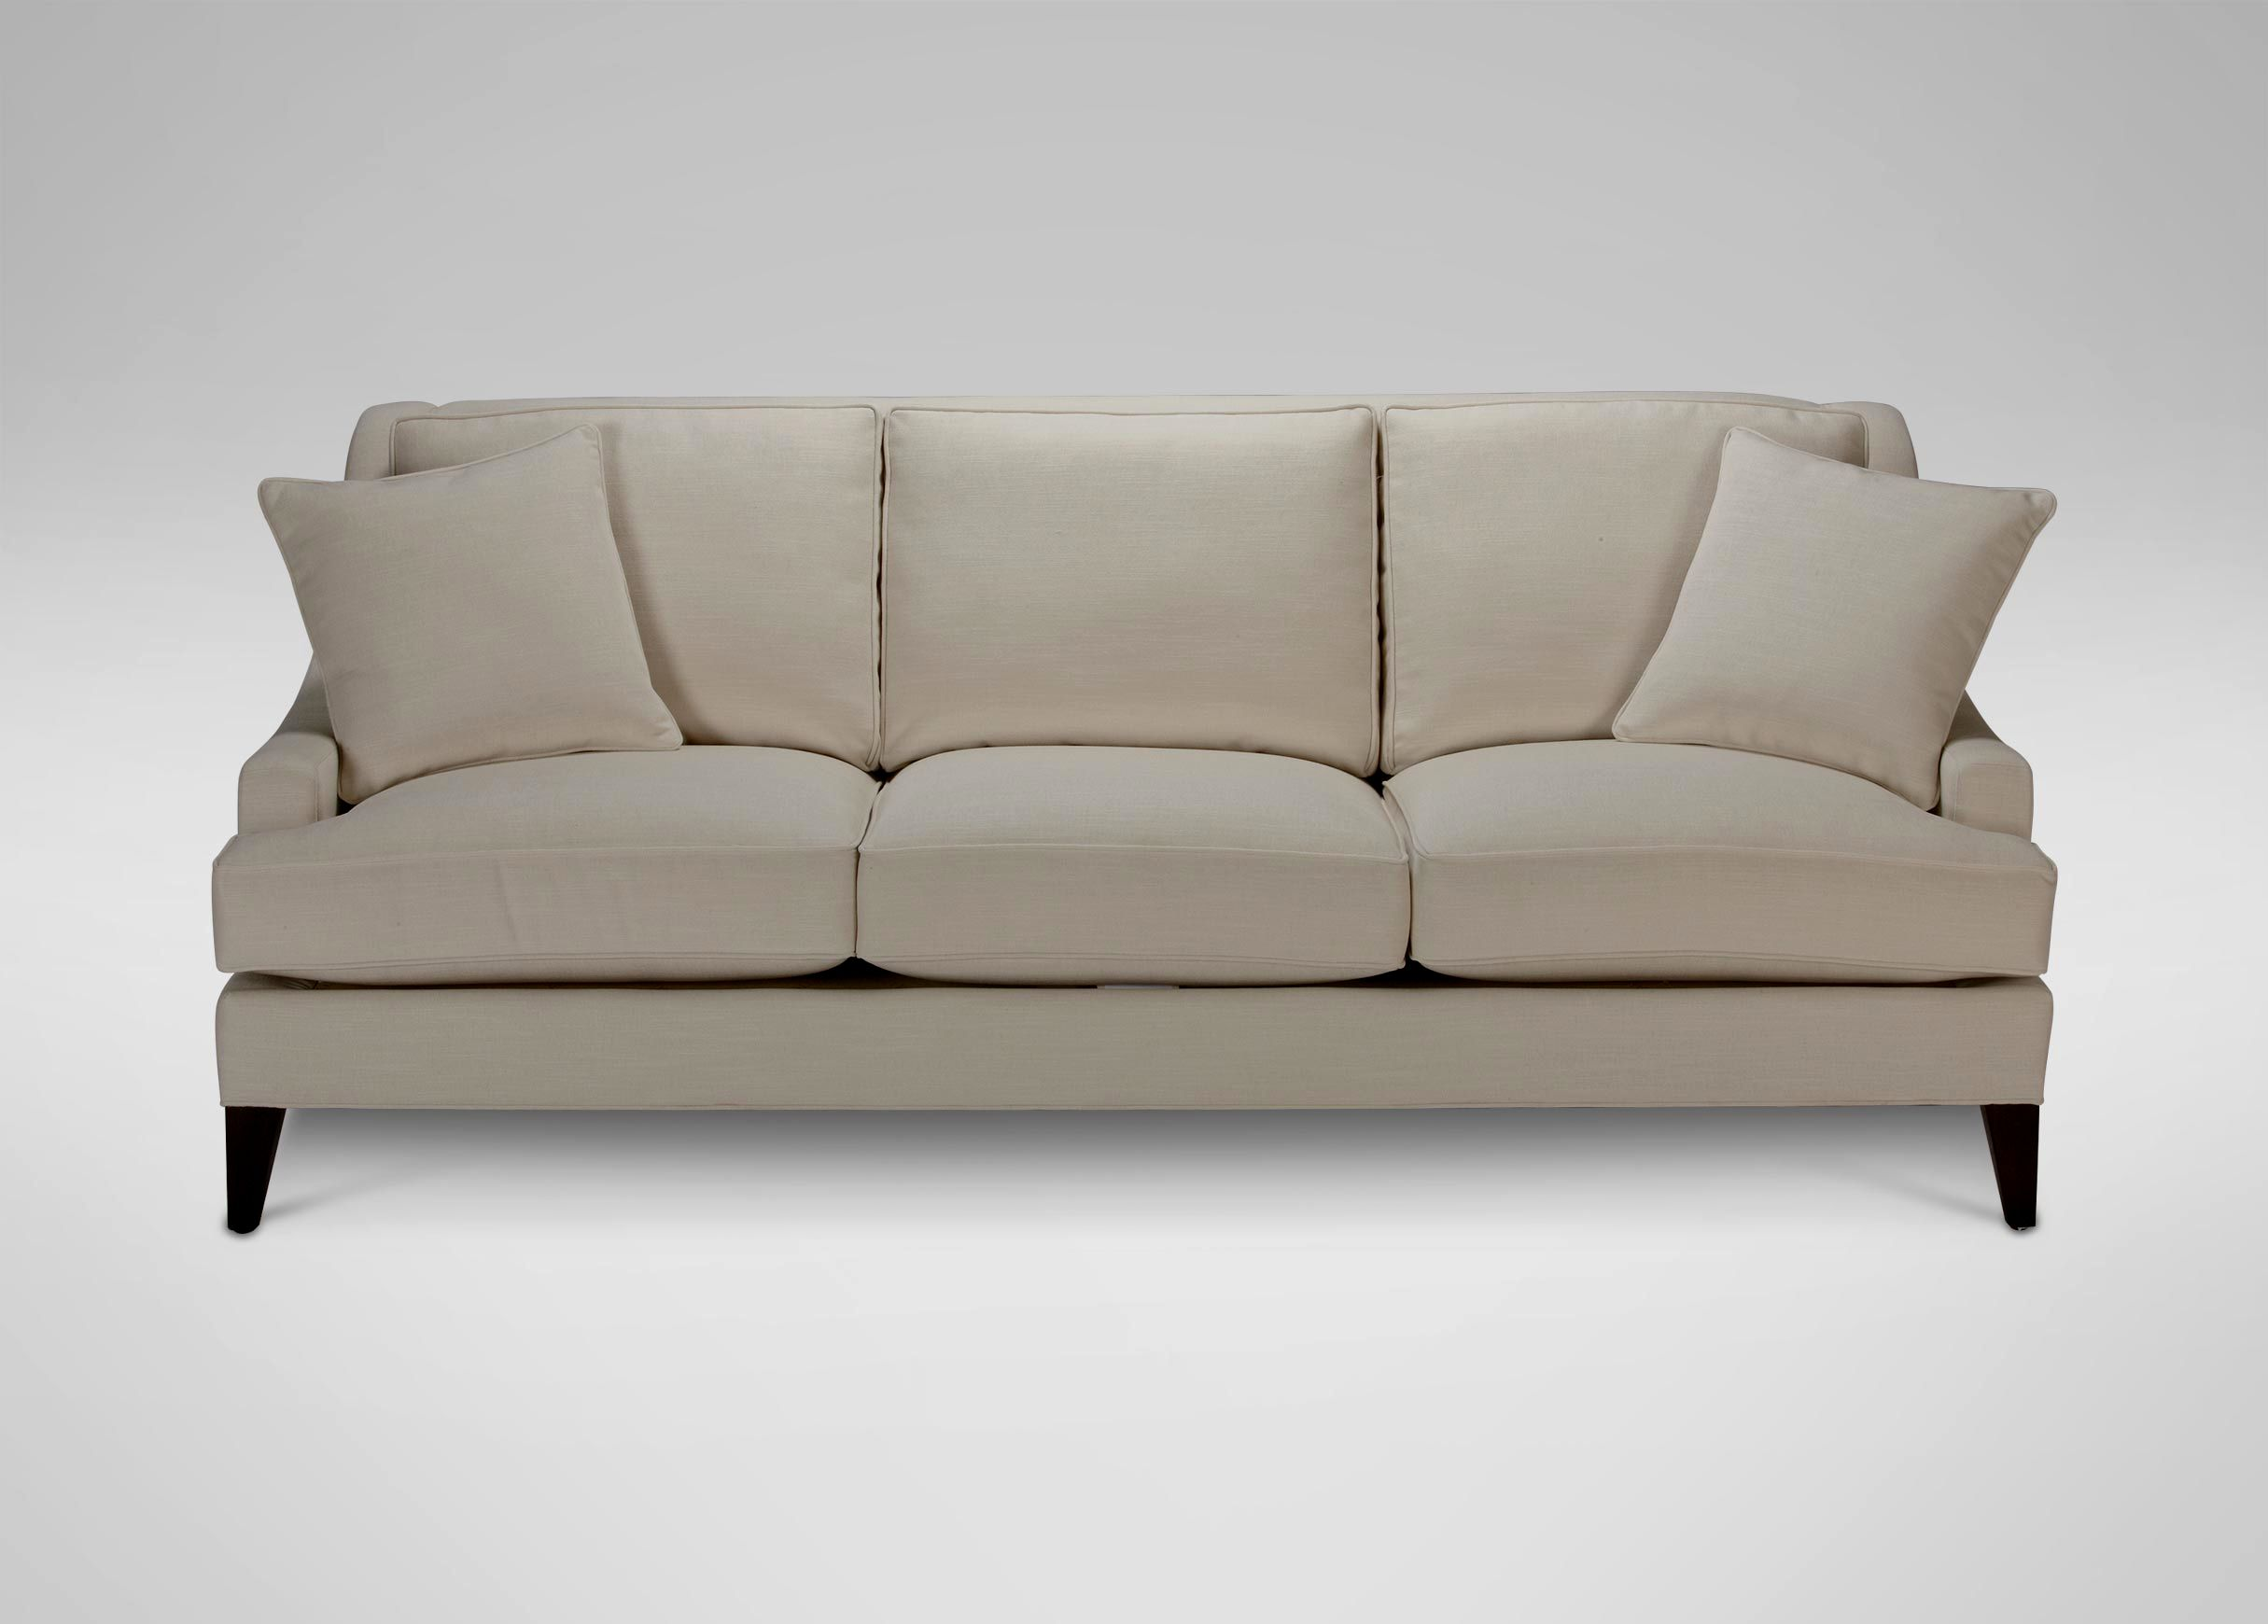 finest ethan allen leather sofa design-Fascinating Ethan Allen Leather sofa Image